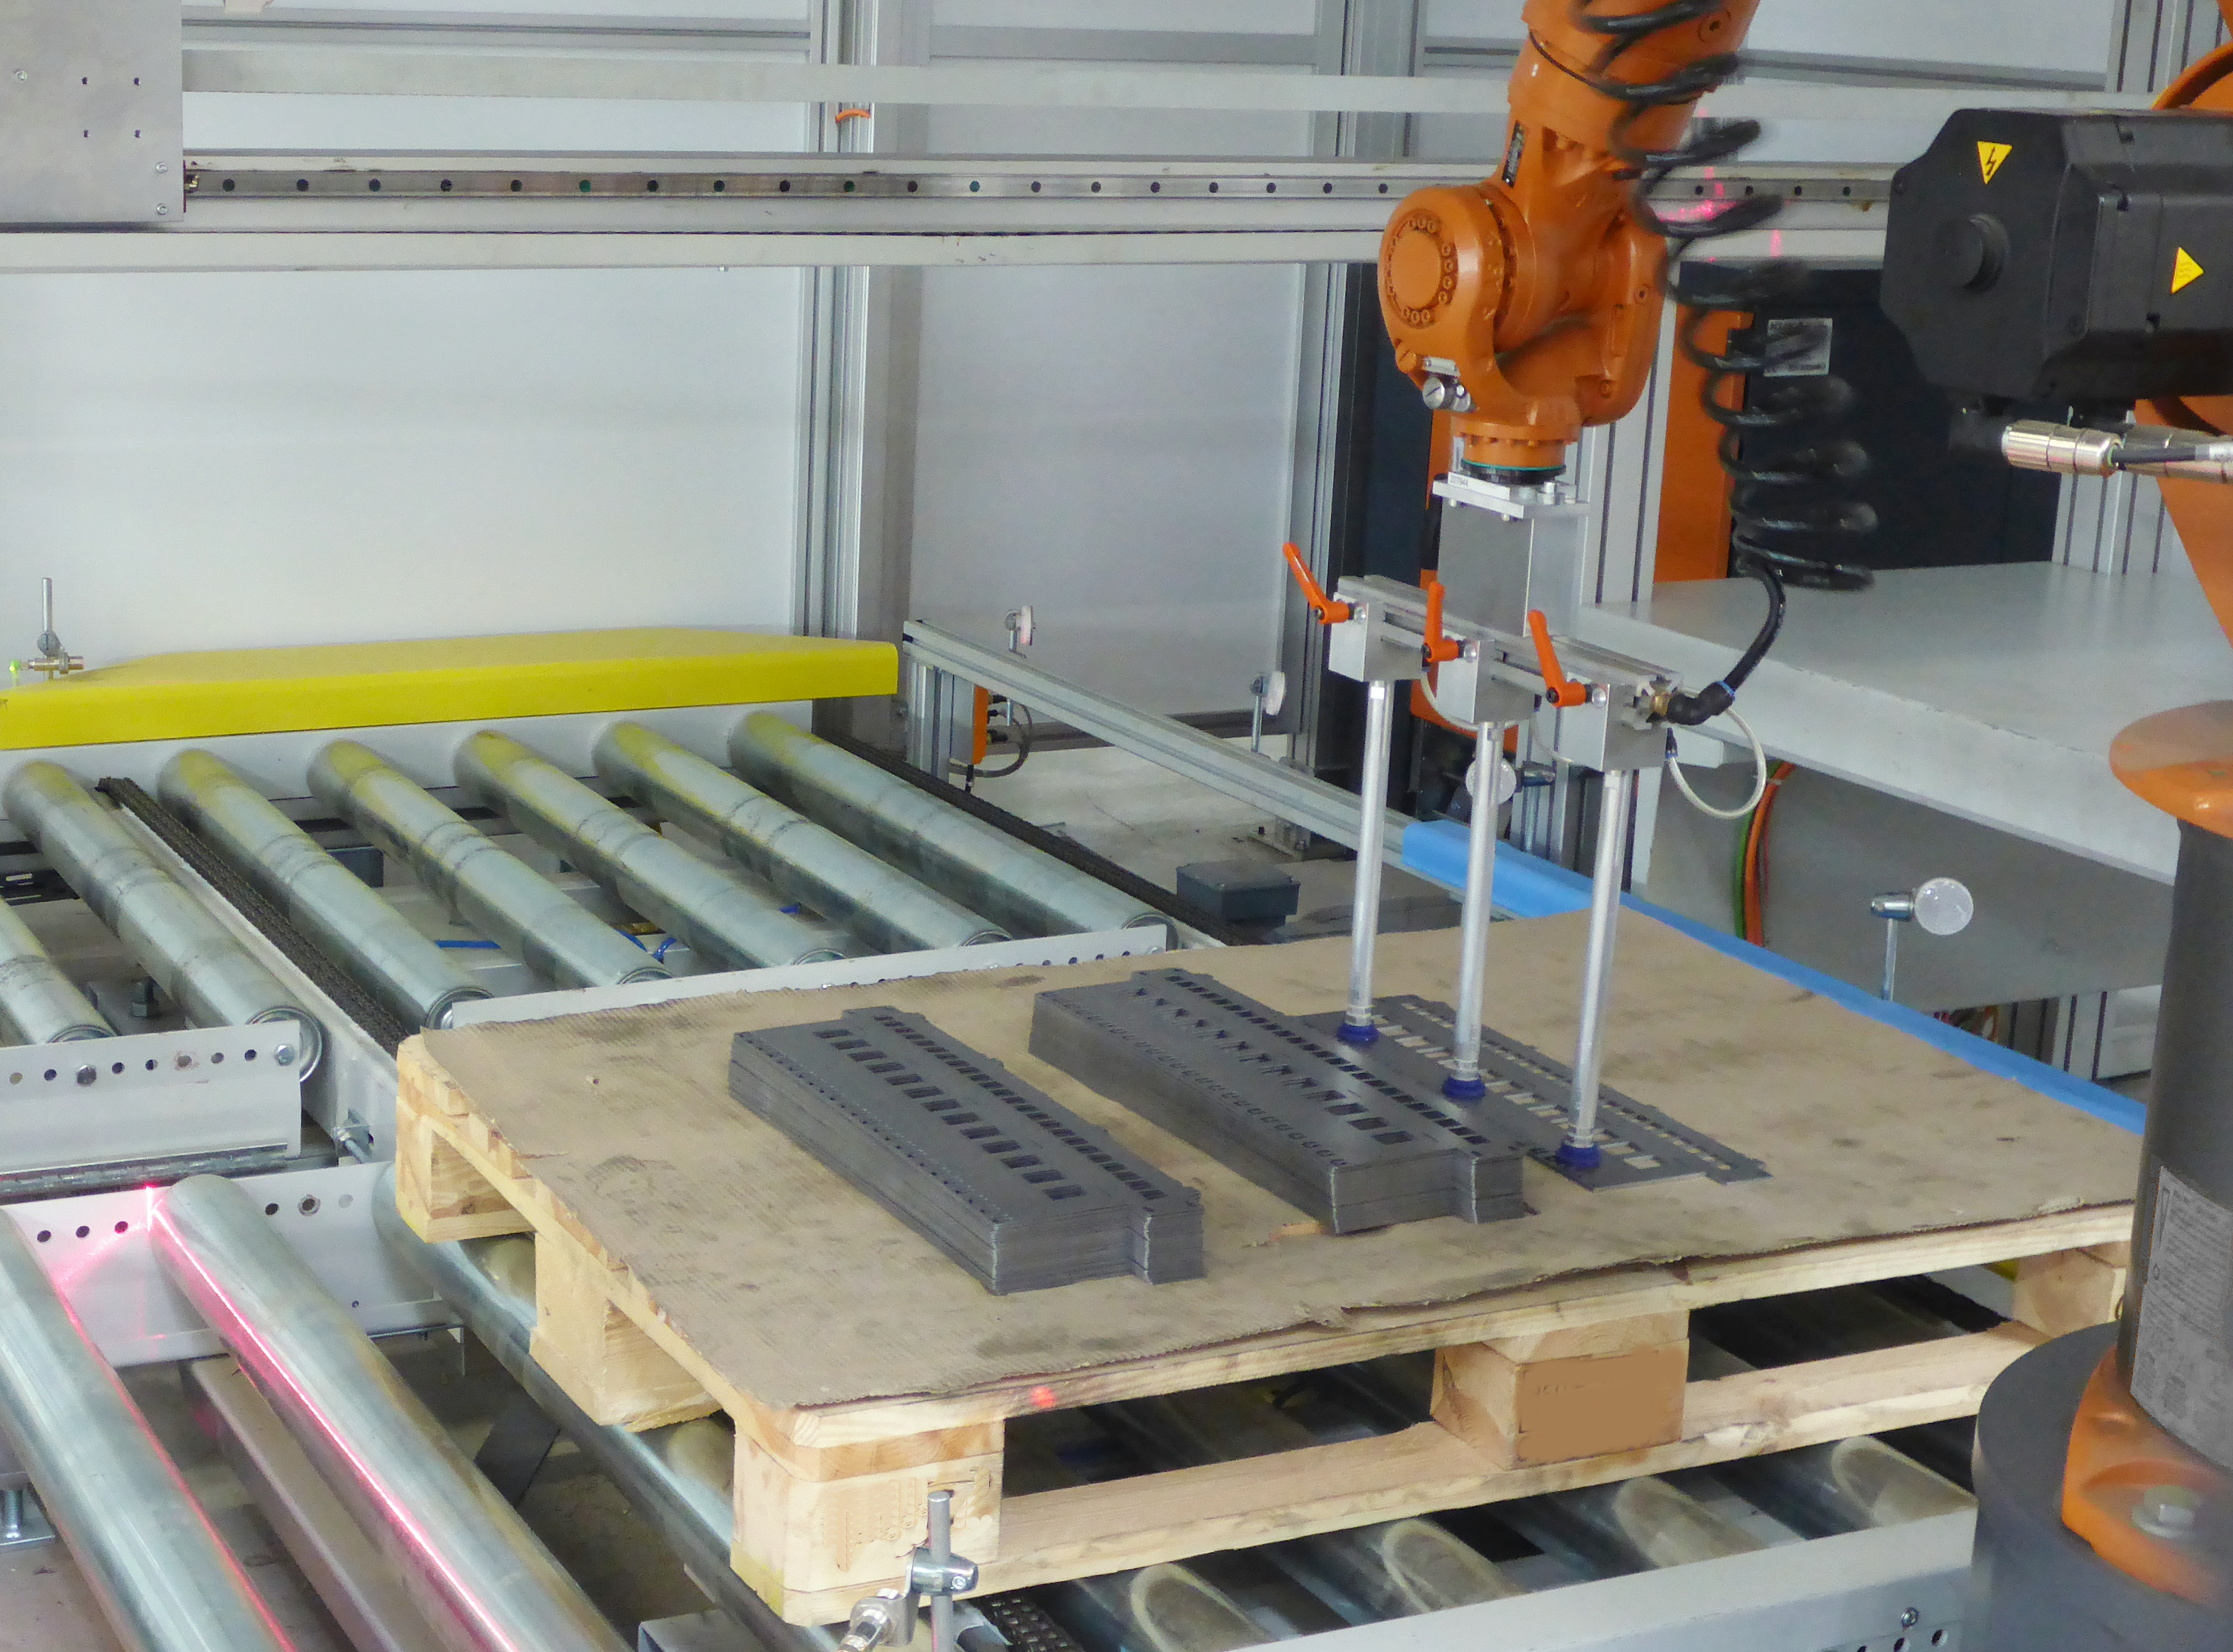 The intelligent laoding robot takes the blanks from the material stacks